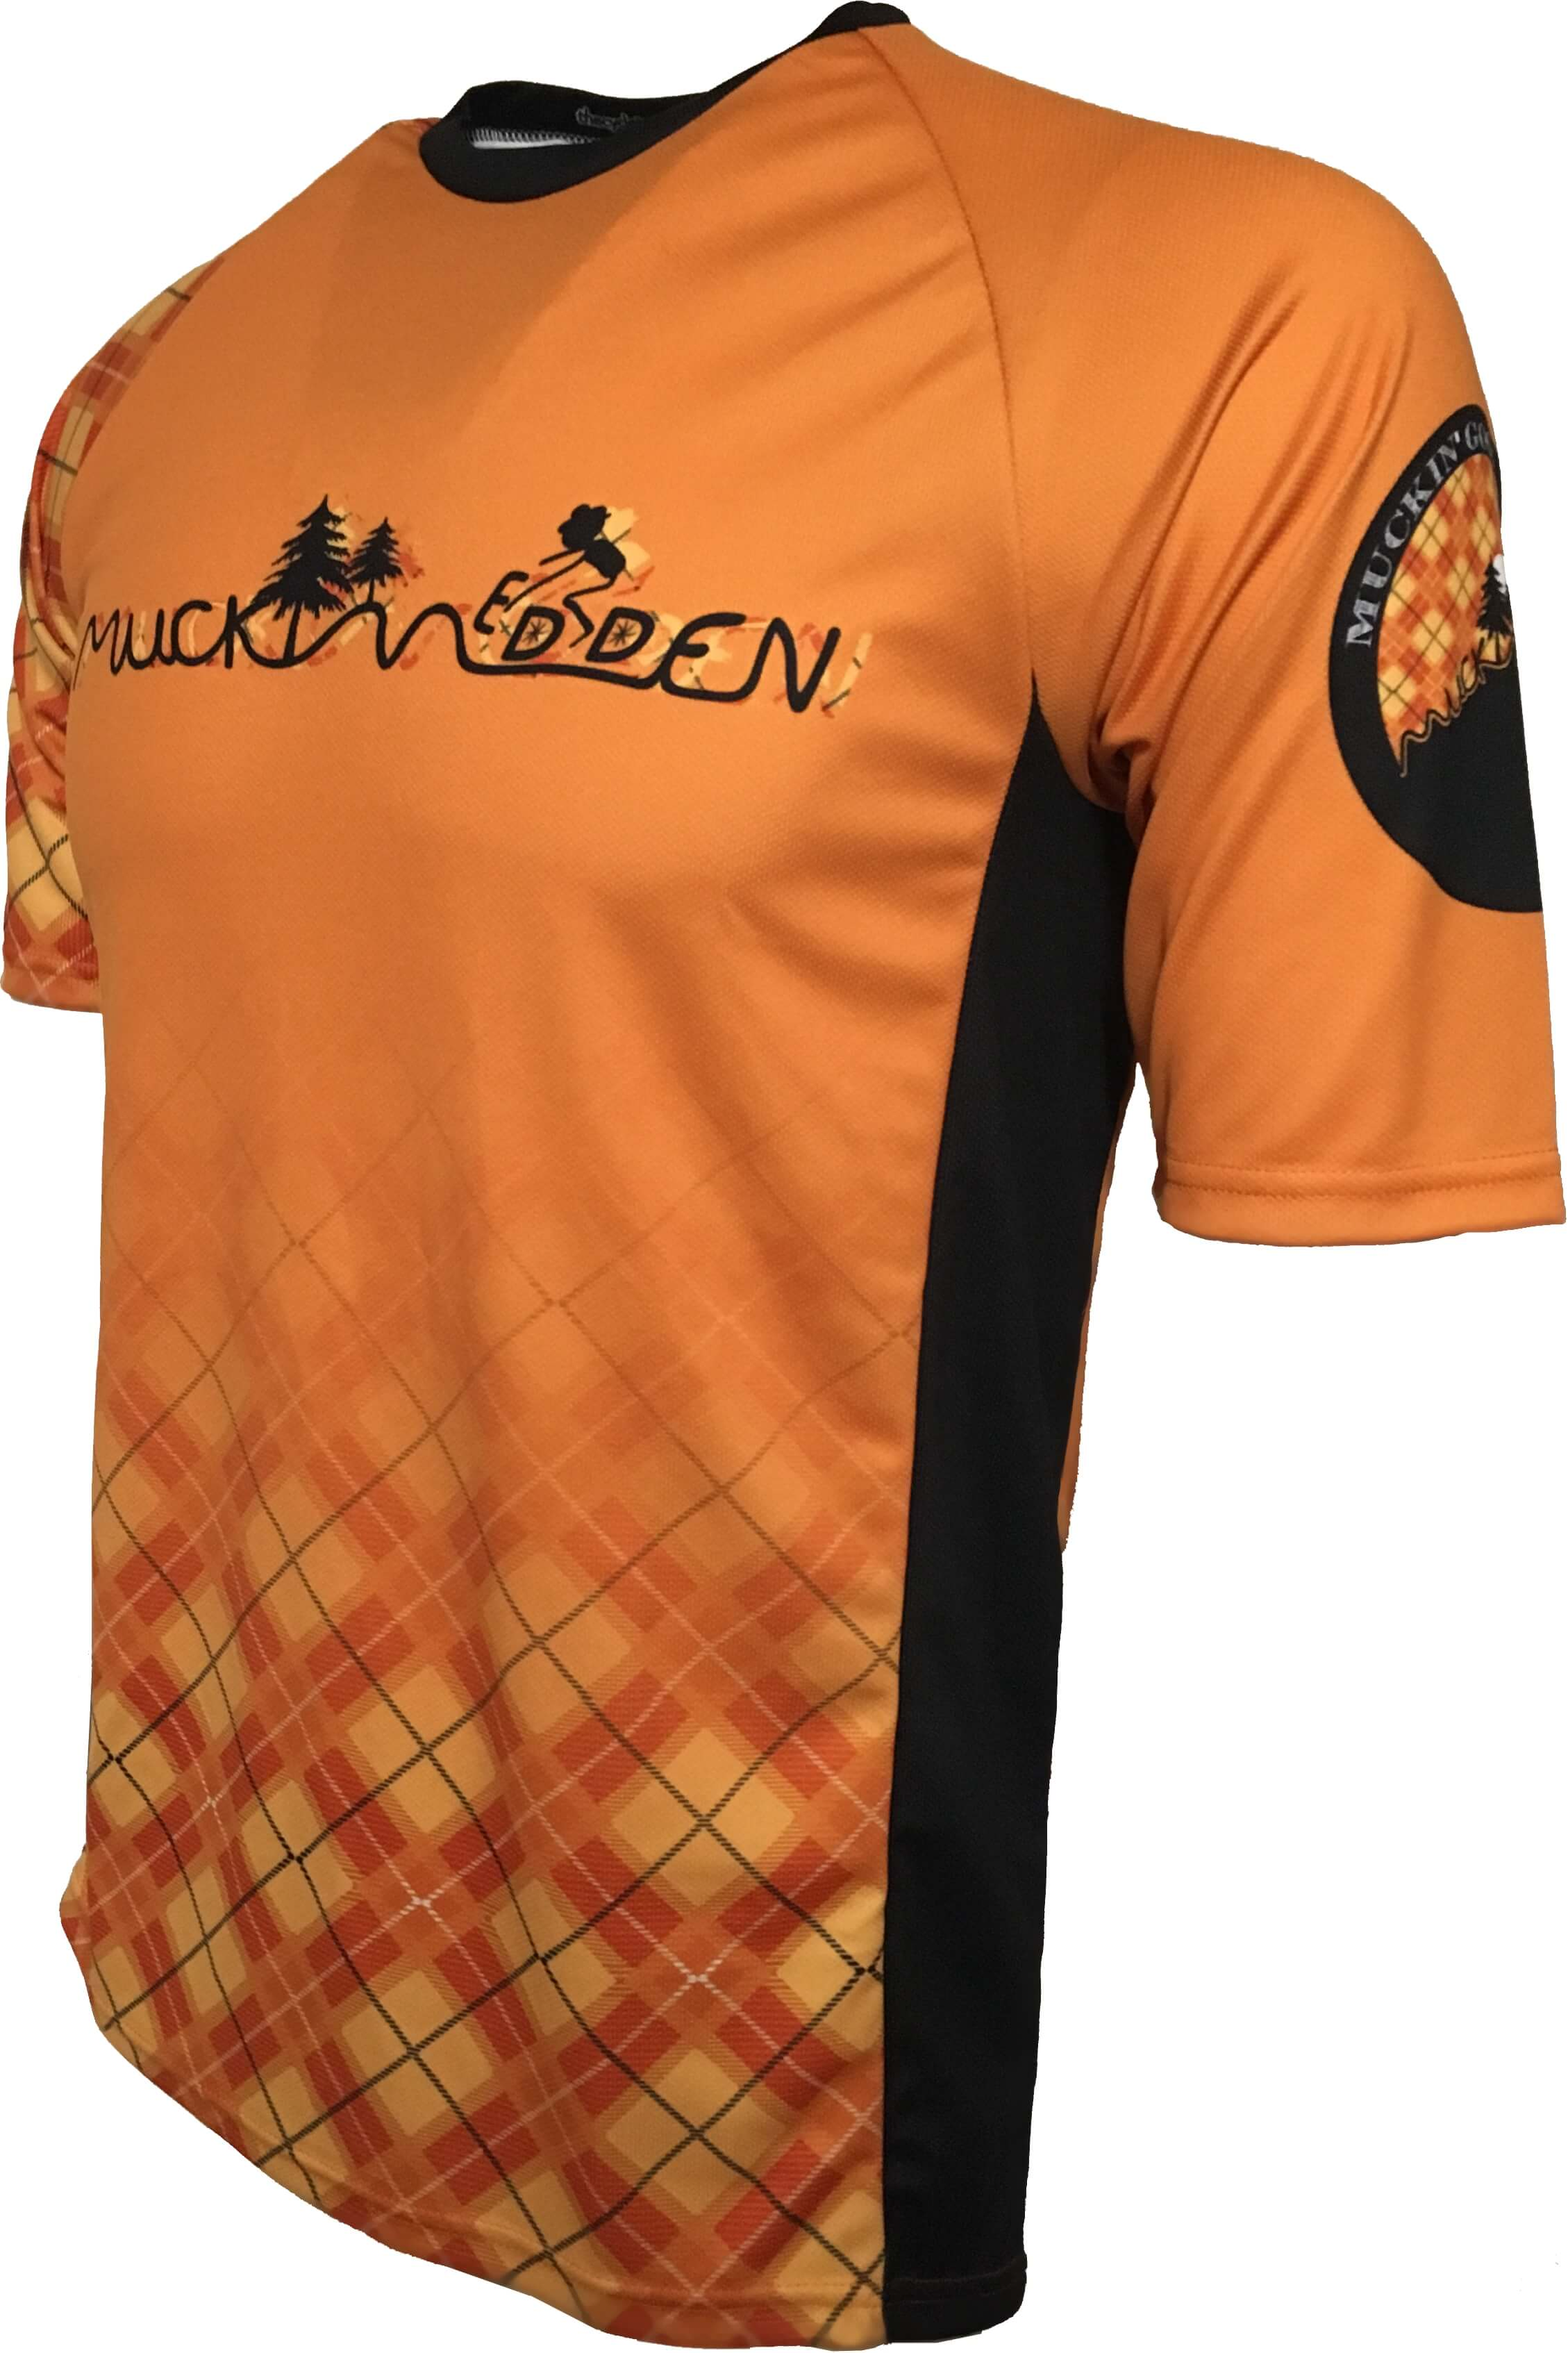 Muckmedden Events Road Jersey